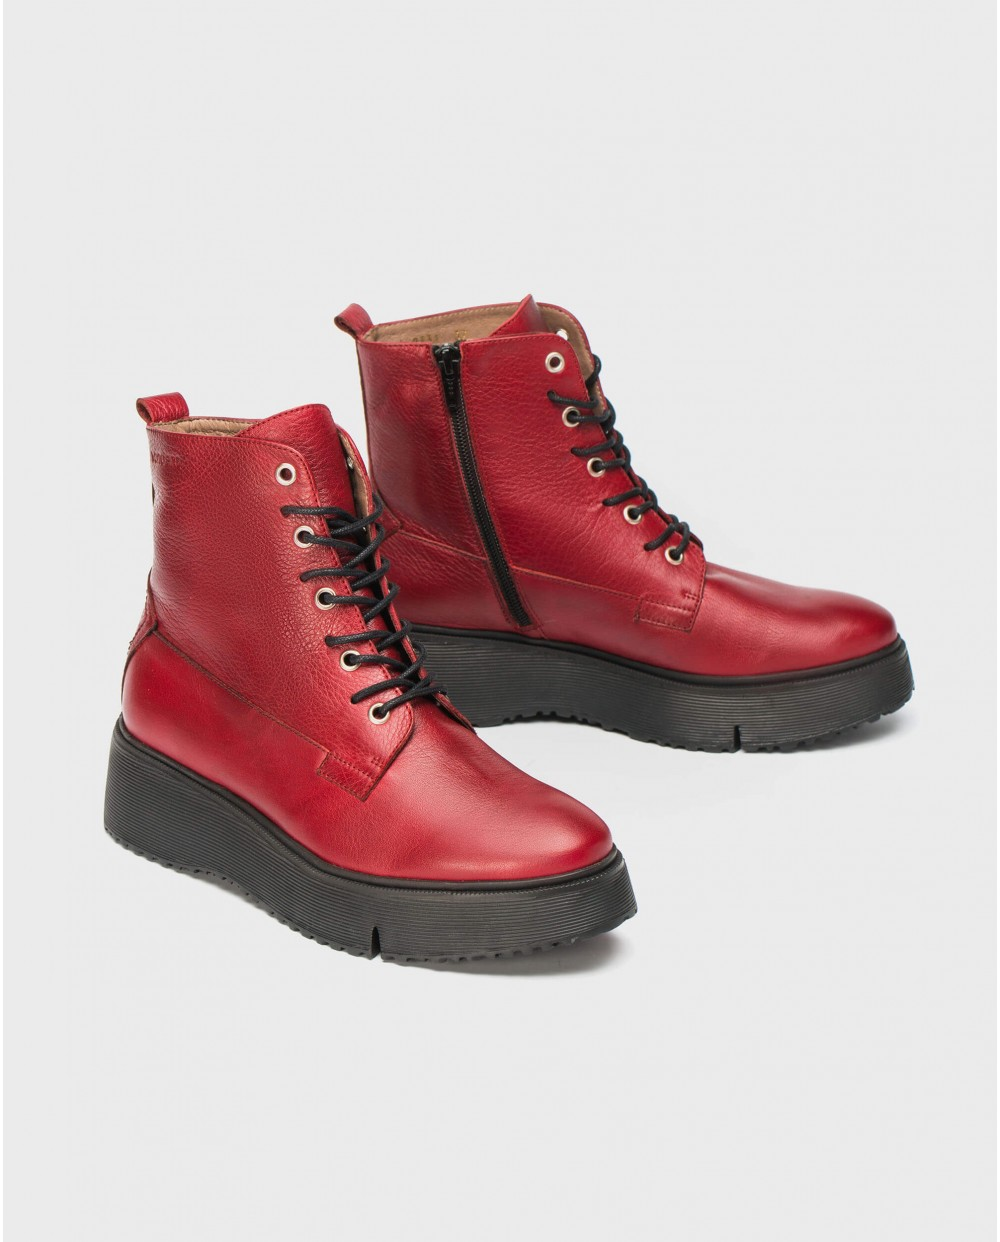 Wonders-Ankle Boots-Ankle boot Bristol red